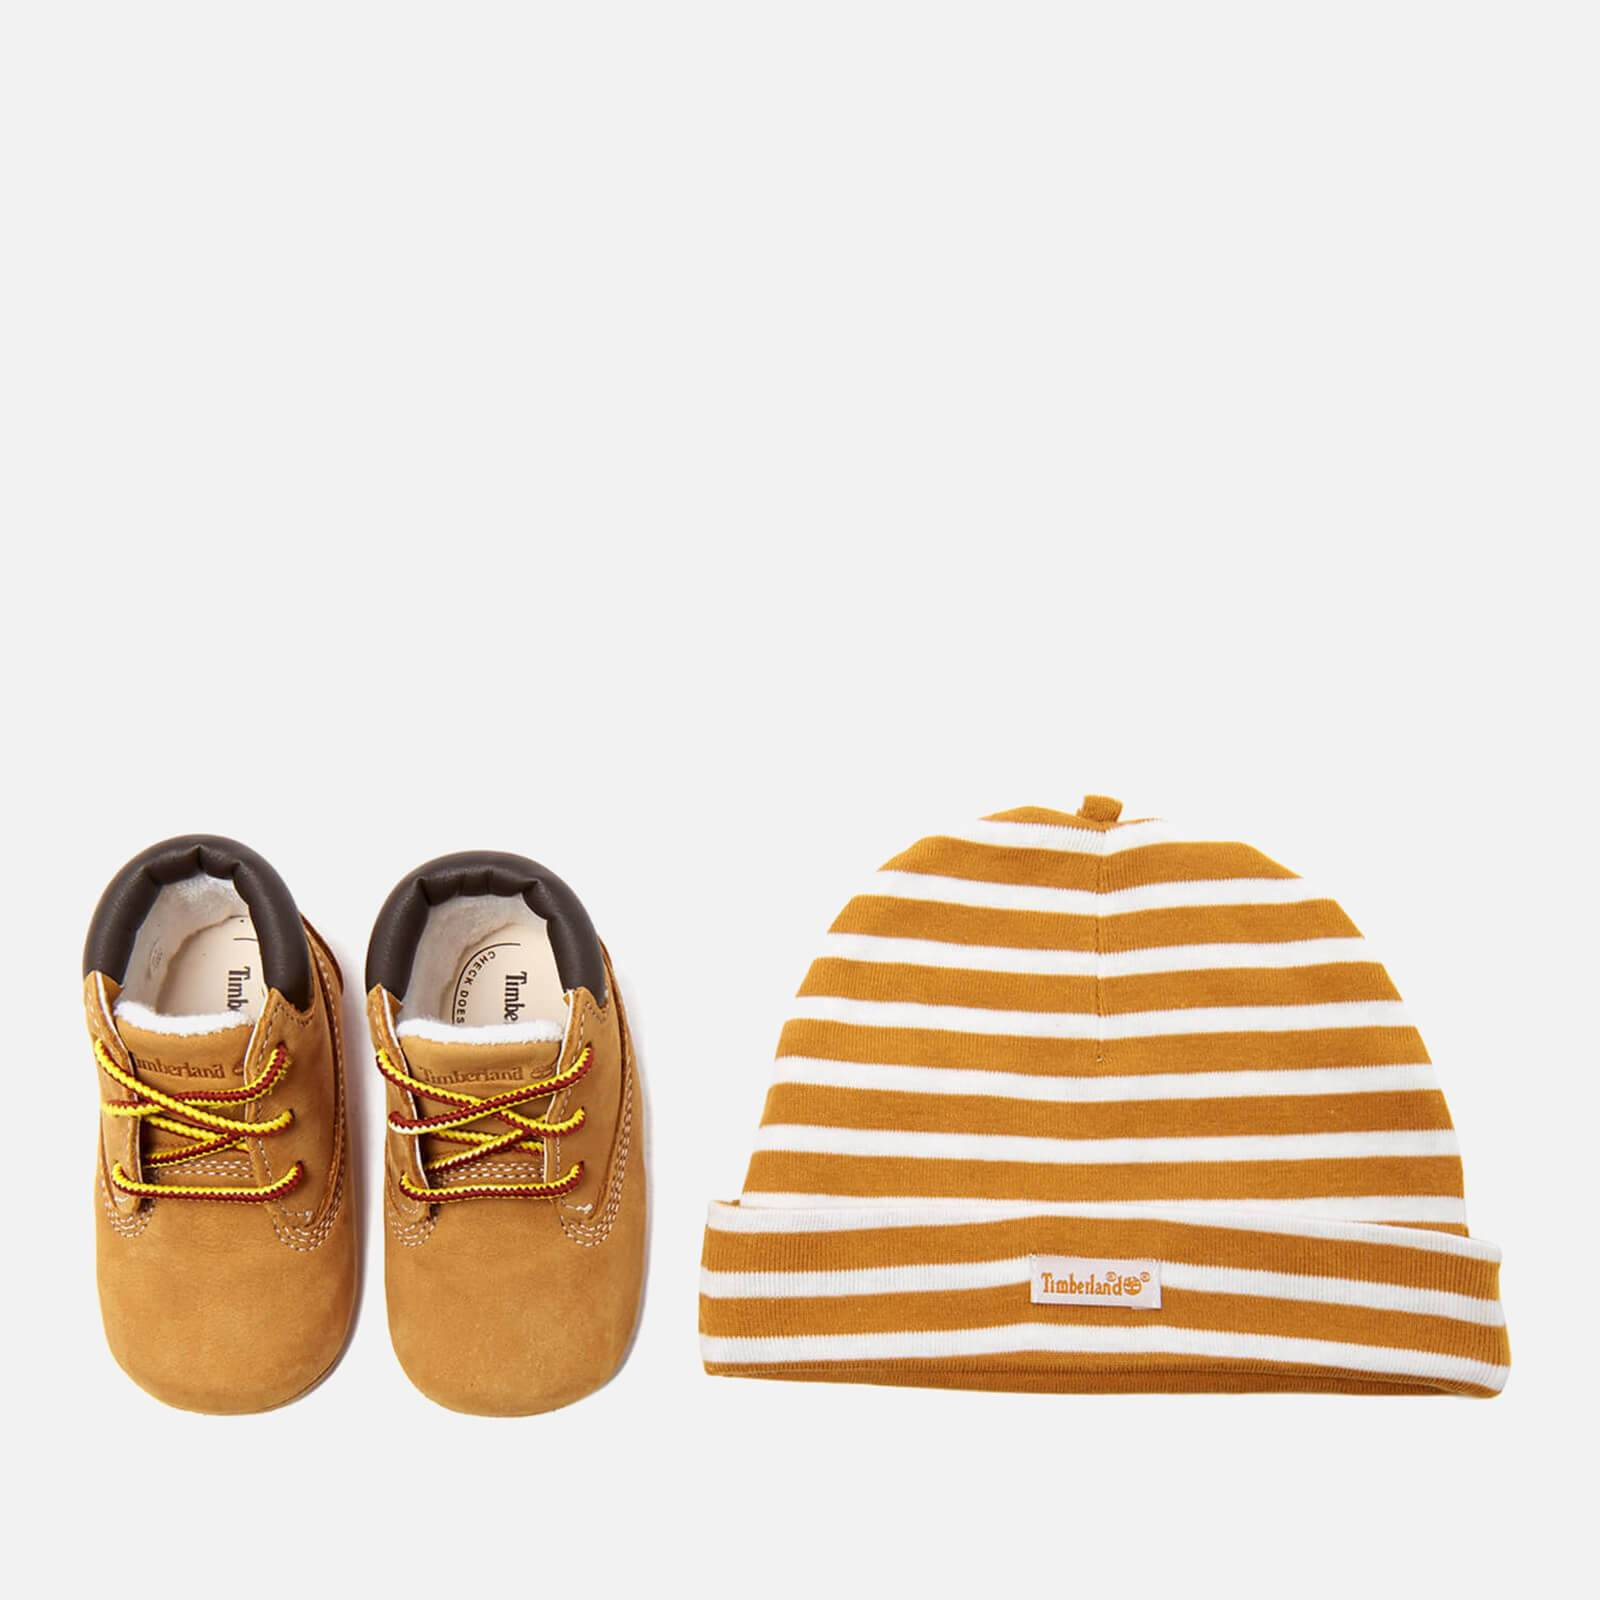 Timberland Babies' Crib Bootie with Hat Gift Set - Wheat - UK 0 Baby